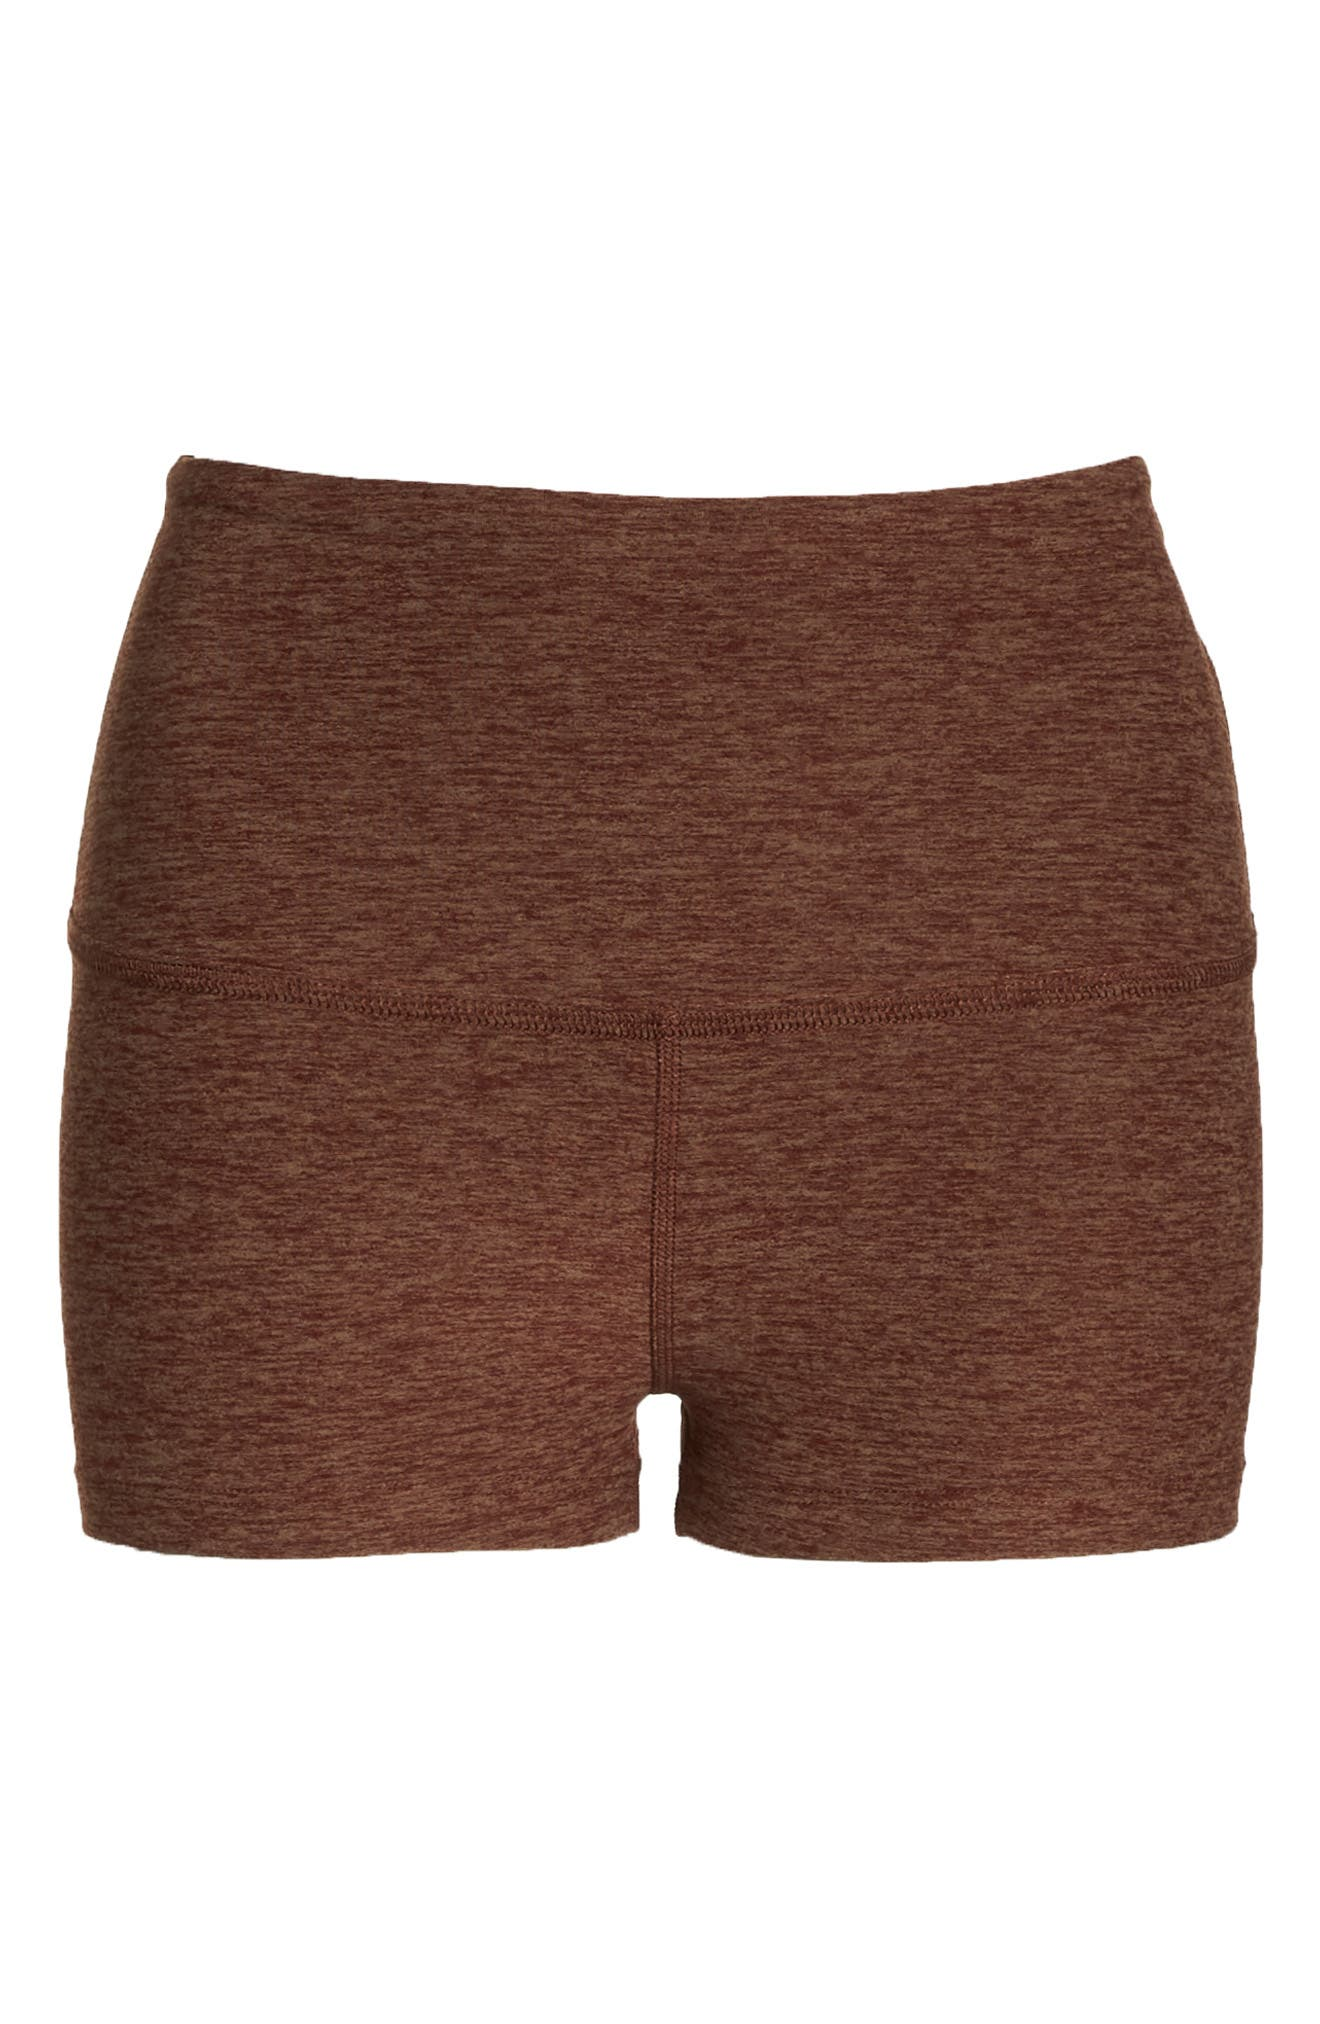 Space Dye Circuit High Waist Shorts,                             Alternate thumbnail 7, color,                             RED ROCK/ TUMBLEWEED